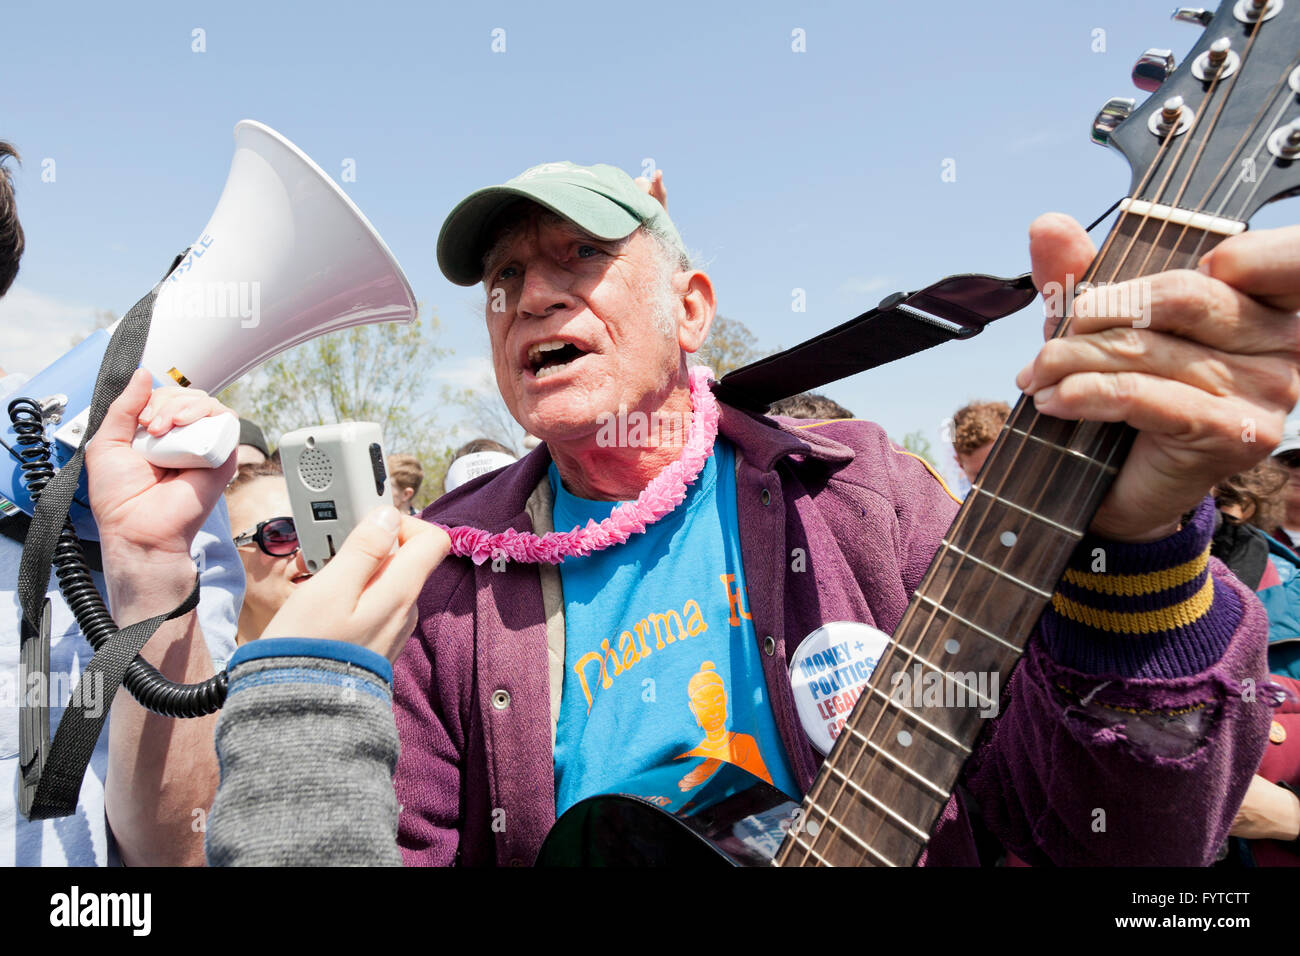 Protester singing folk songs at political rally - Washington, DC USA - Stock Image